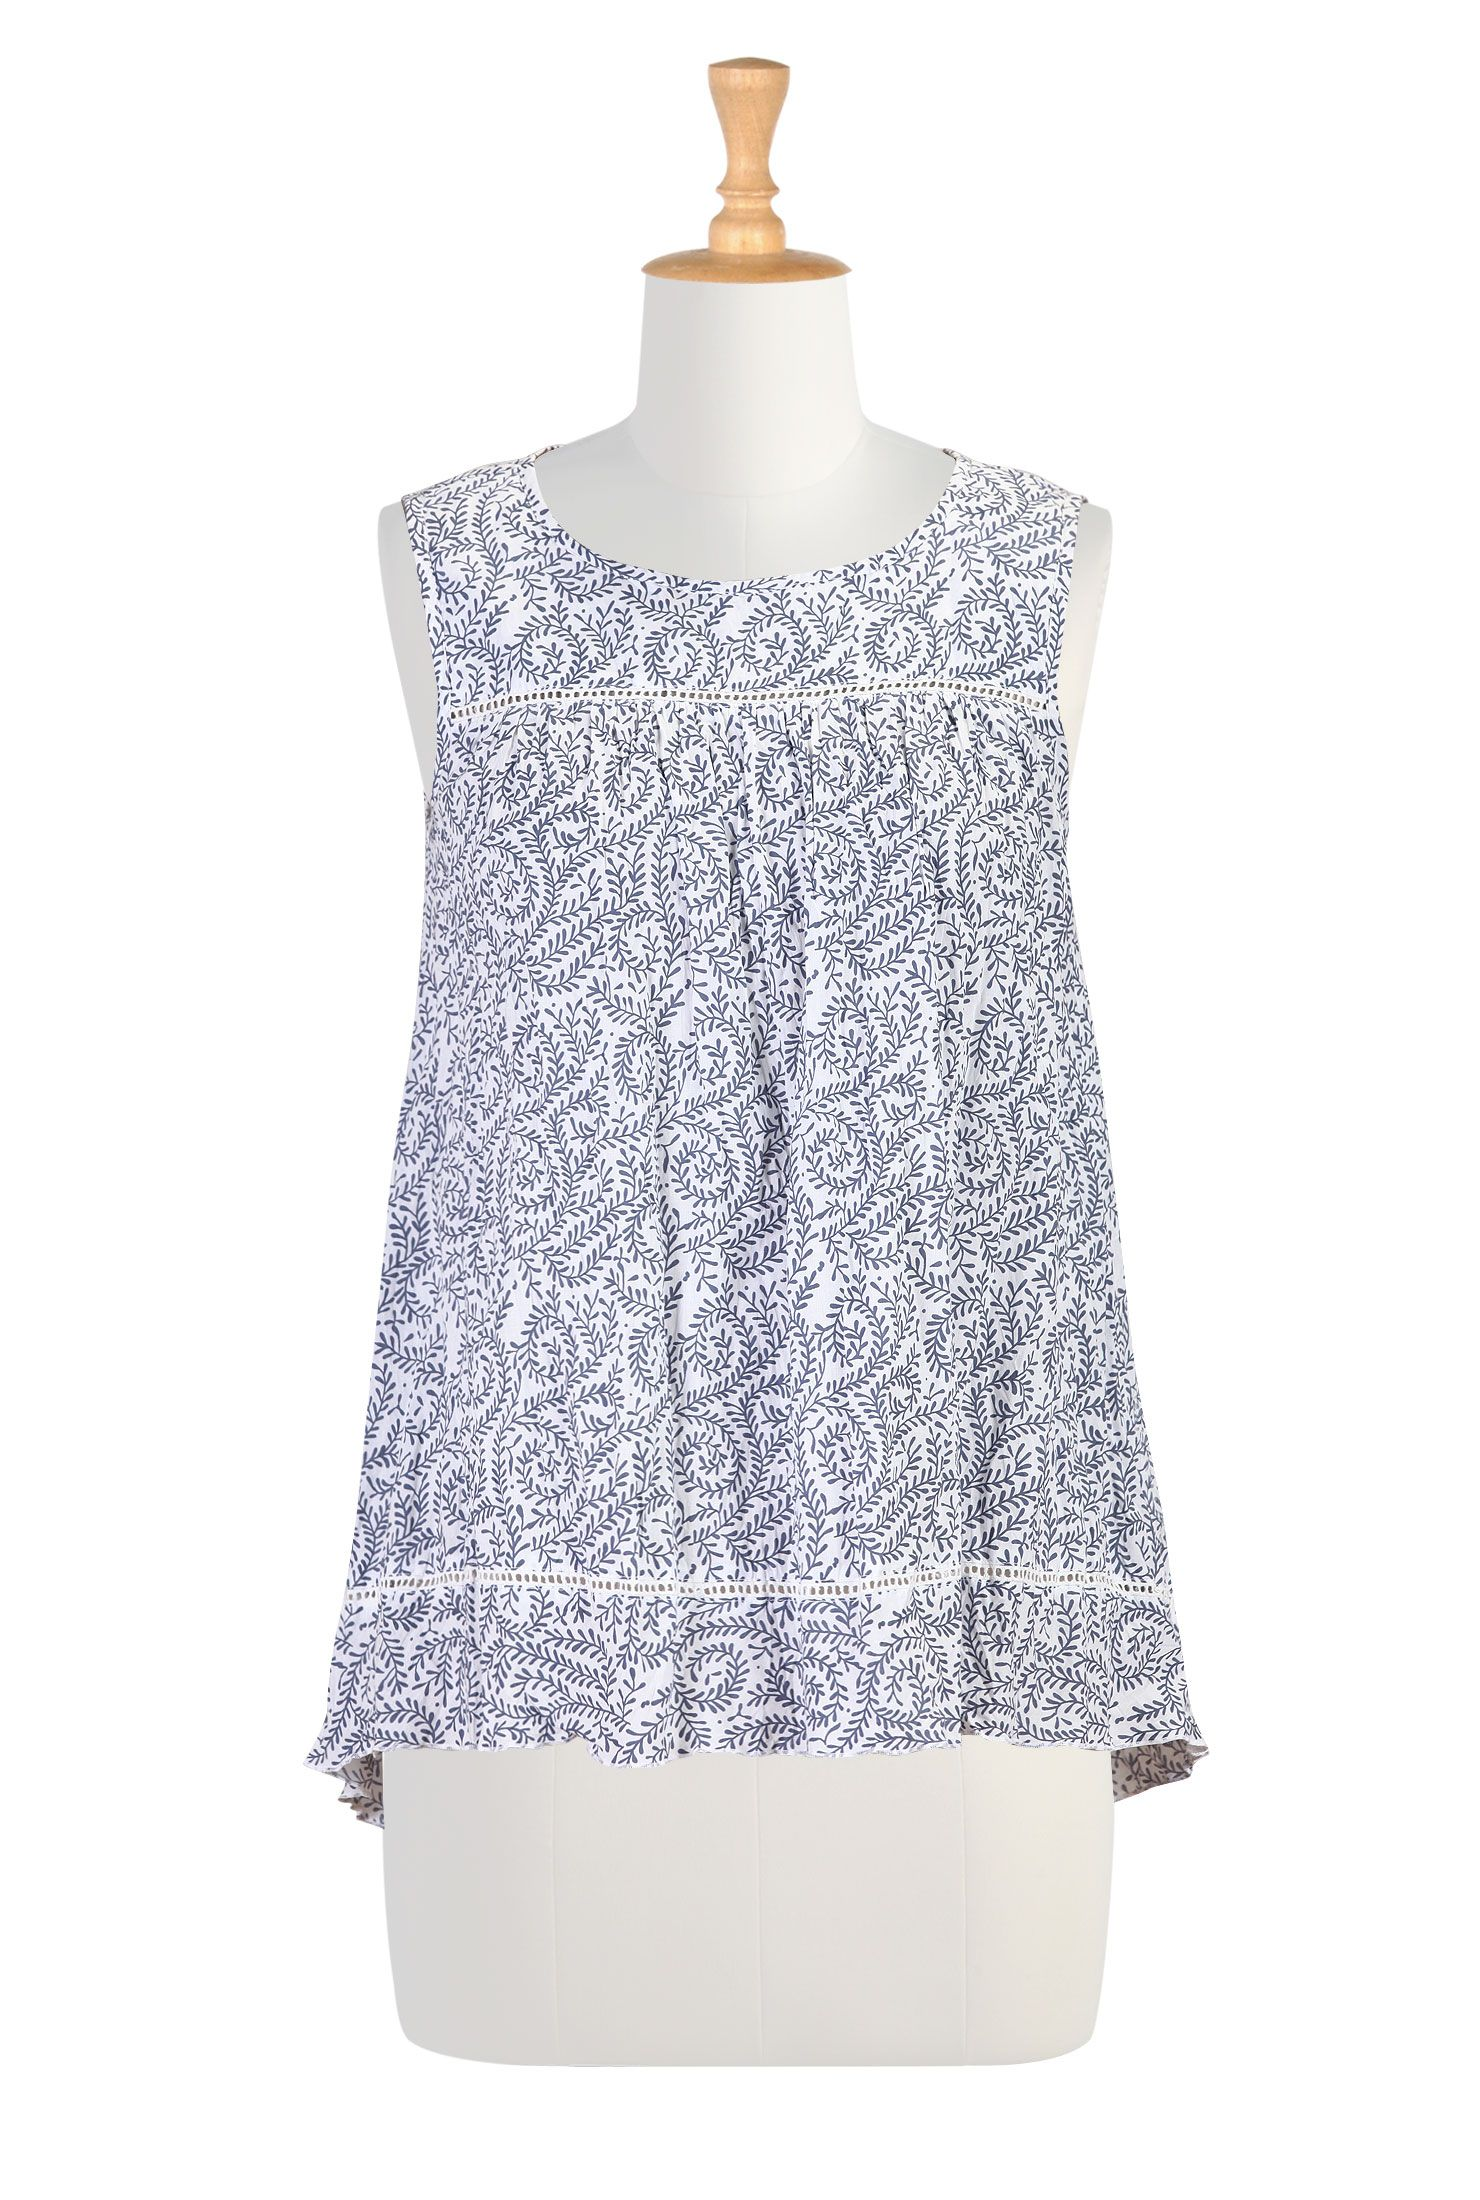 Hand Crinkled Cotton Tops, Cotton Print Summer Tops Womens fashion clothes - Embellished Tops - Embellishments, Embroidery, Applique, Floral...